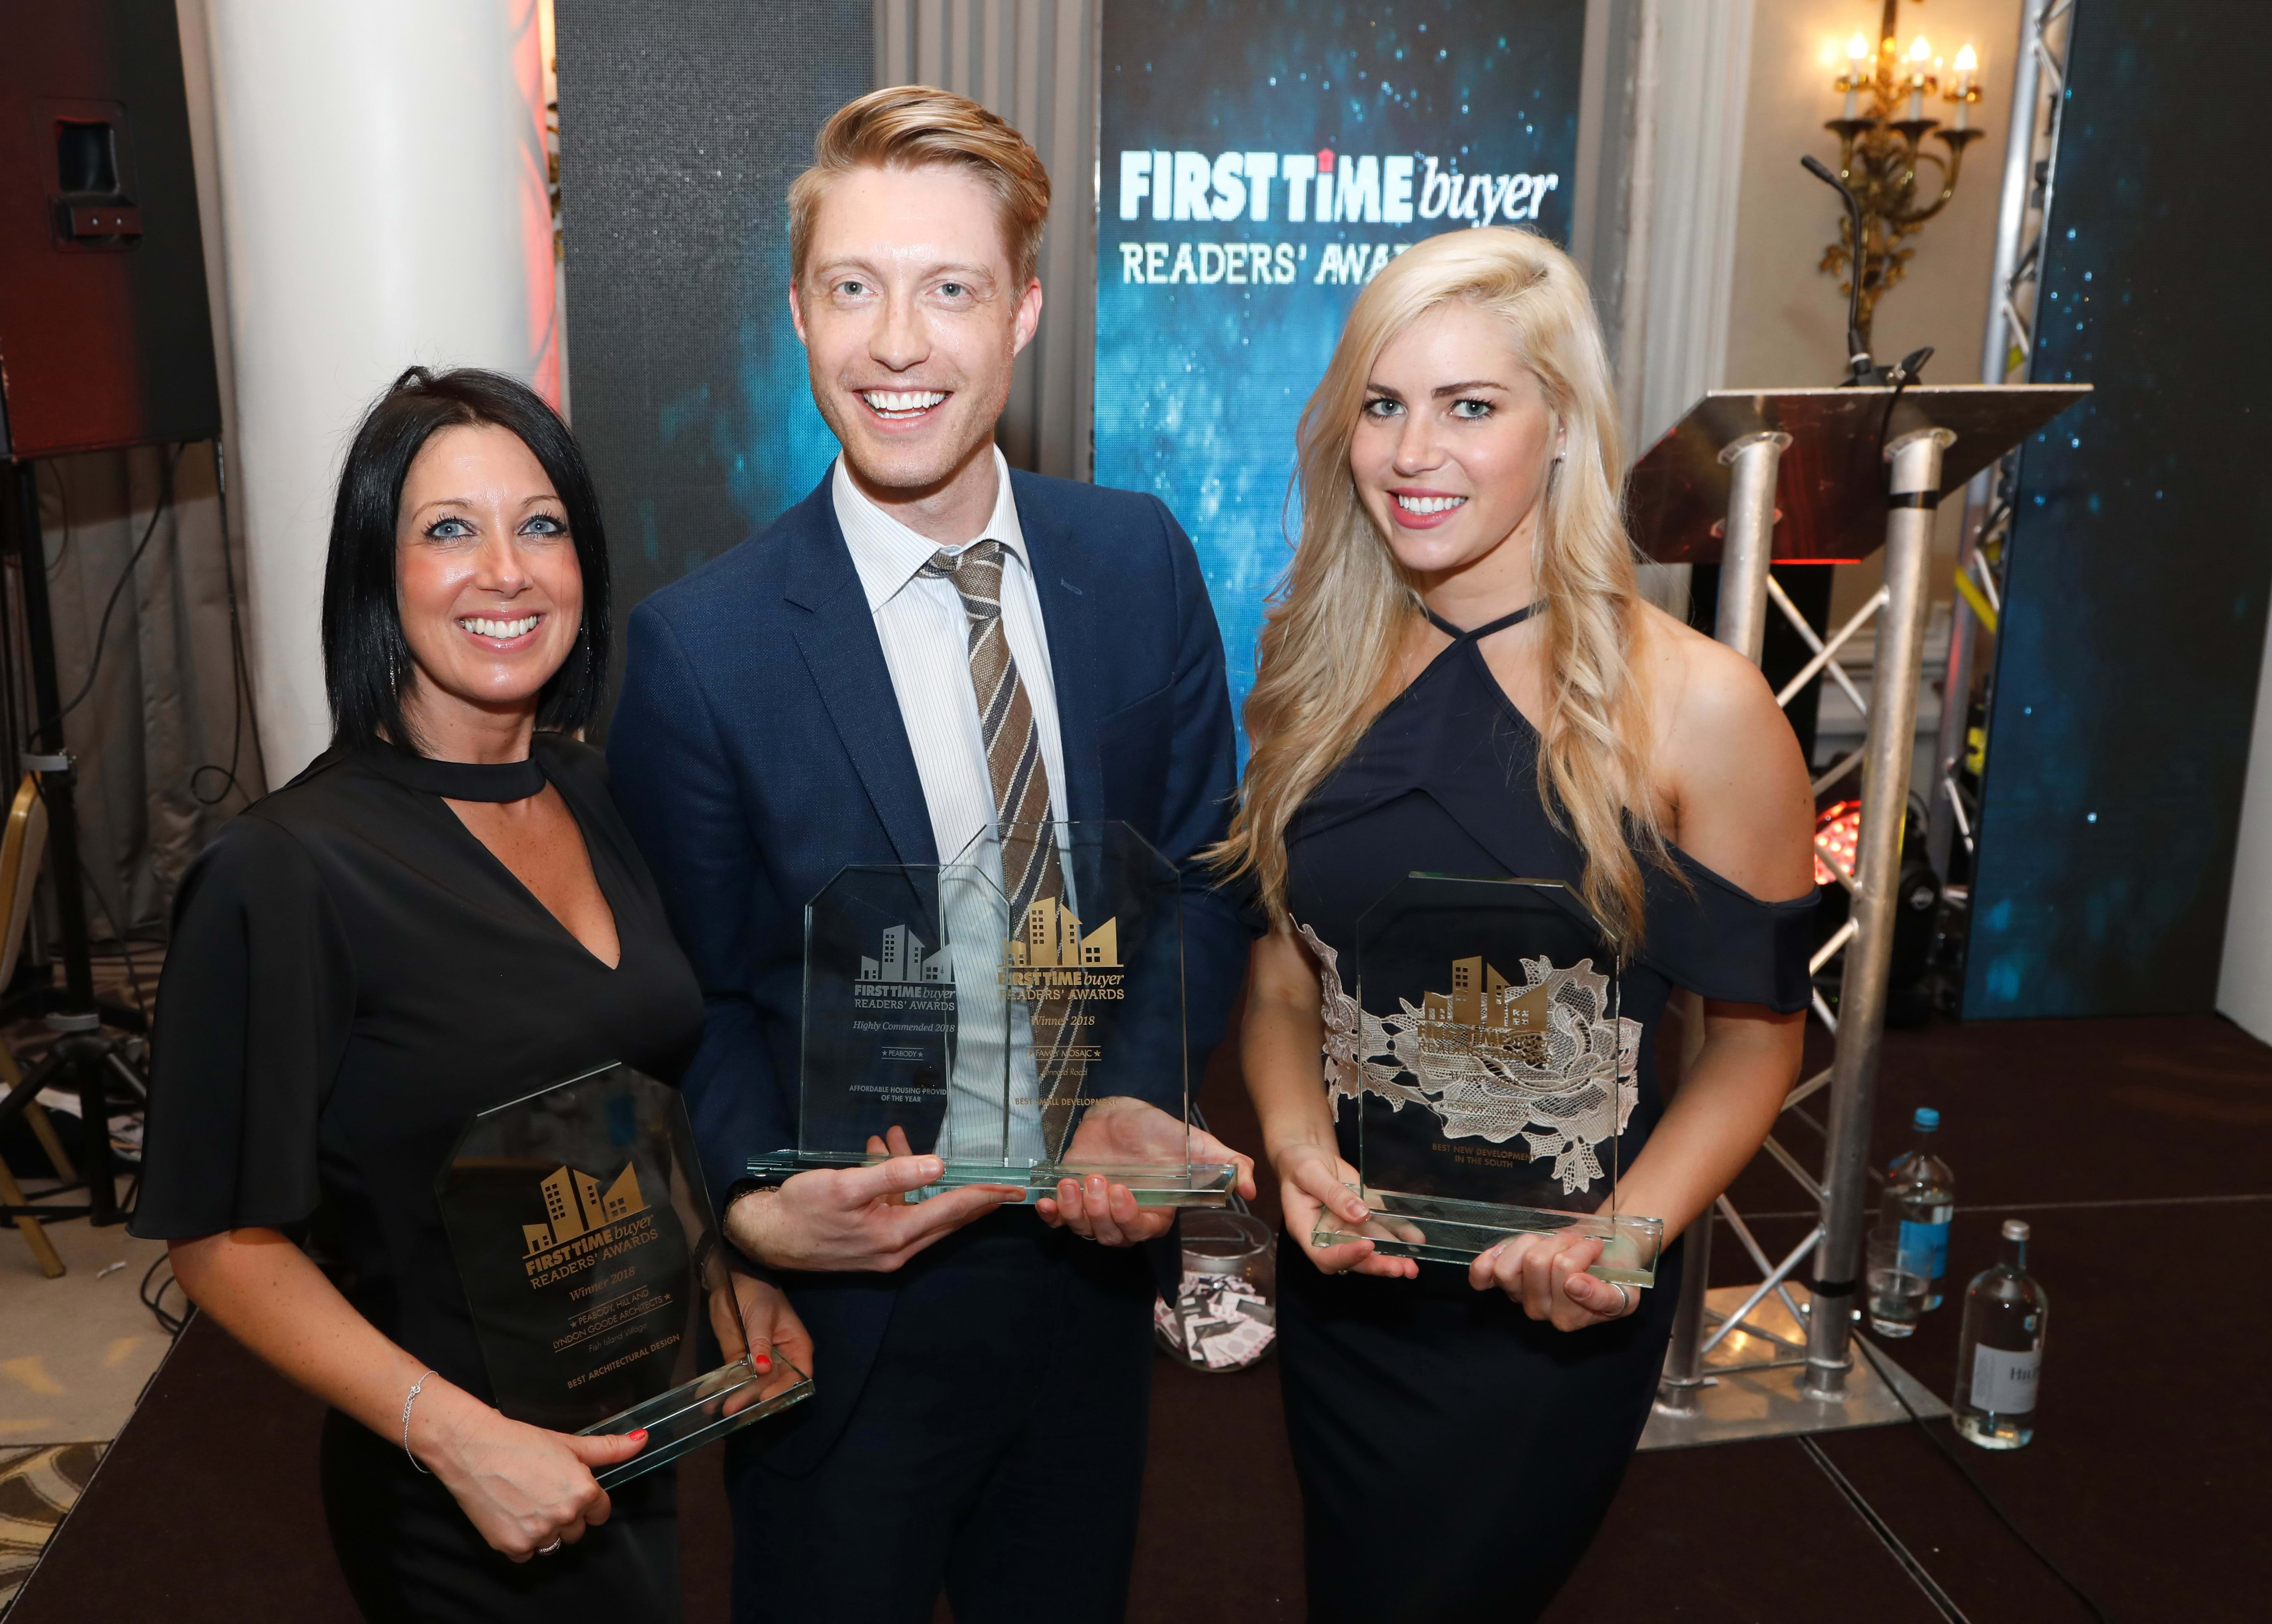 First Time Buyer Awards